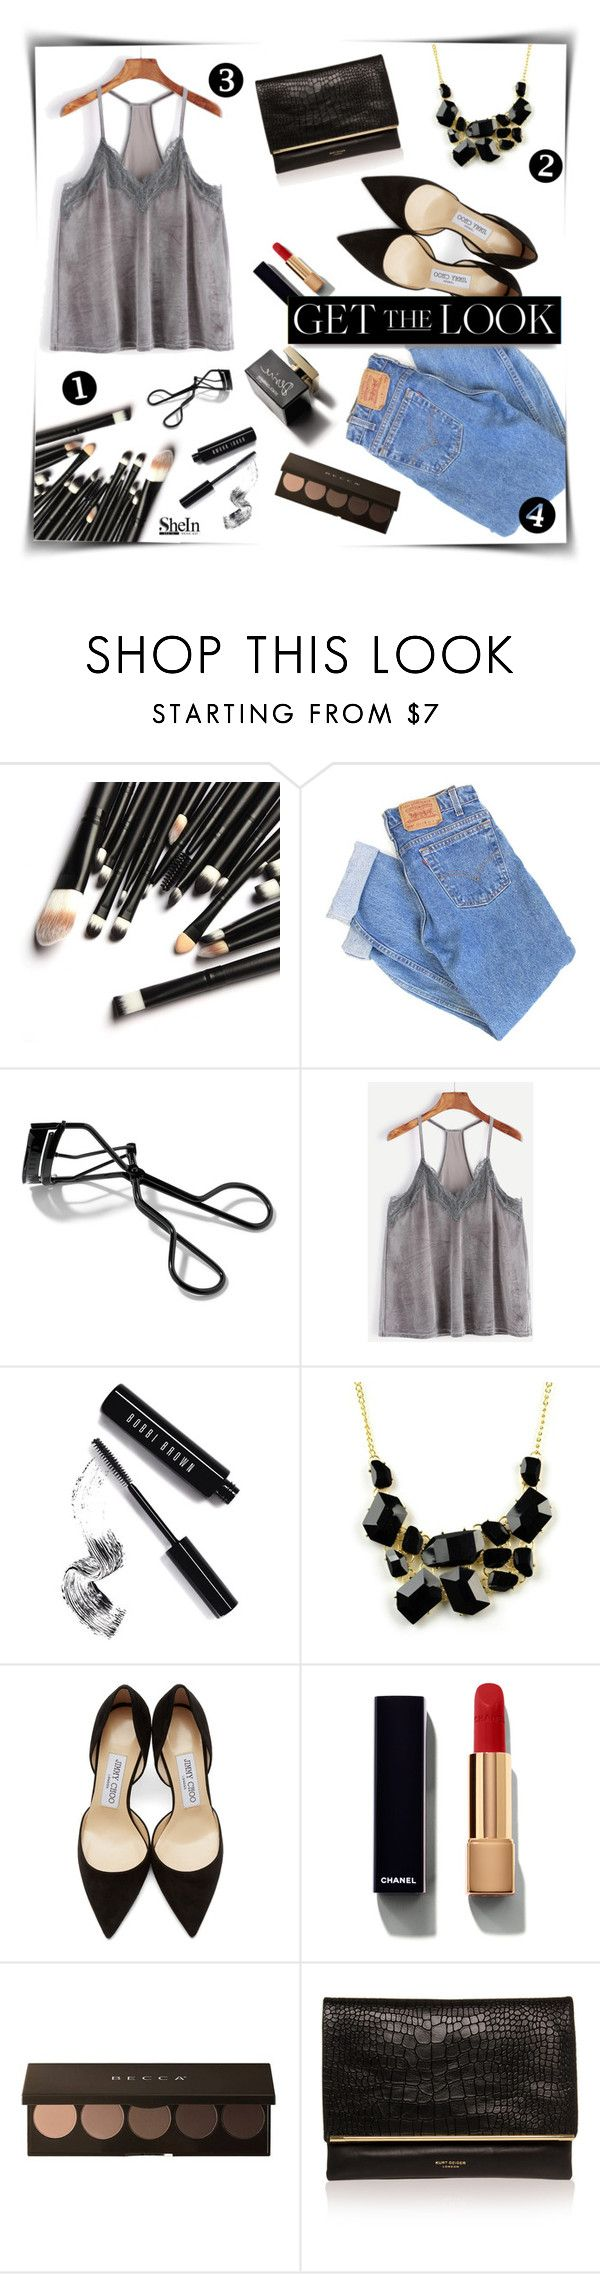 """For all my single ladies :)"" by magi-418 ❤ liked on Polyvore featuring Levi's, Bobbi Brown Cosmetics, D&G, Emi Jewellery, Jimmy Choo, Chanel, White Label and Kurt Geiger"